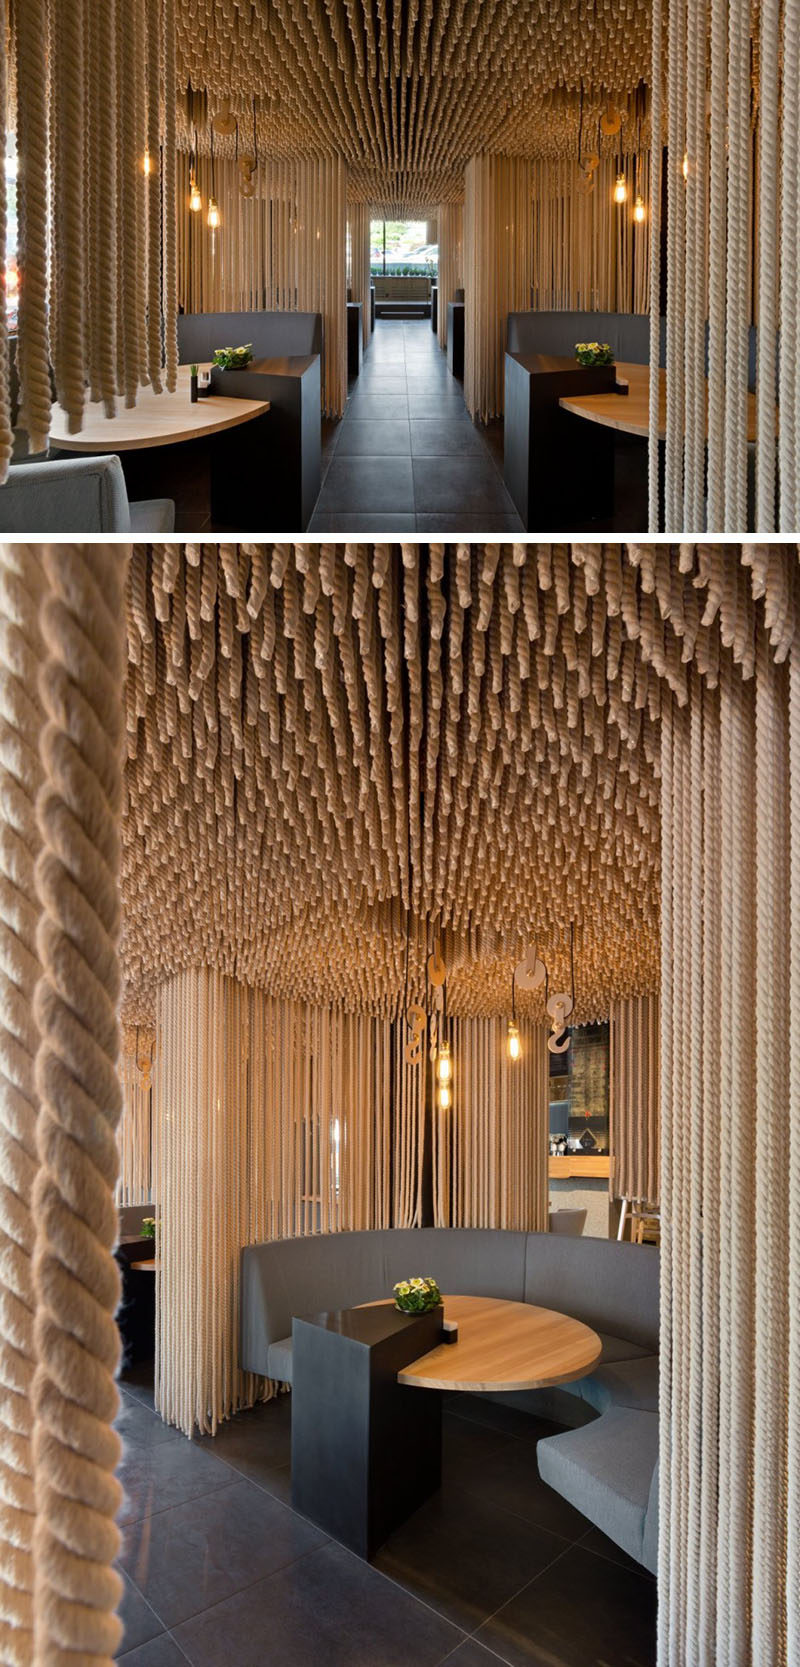 15 Creative Ideas For Room Dividers // Suspended ropes give diners at this restaurant a sense of privacy while they eat.  #ModernRoomDivider #RoomDivider #InteriorDesign #Interiors